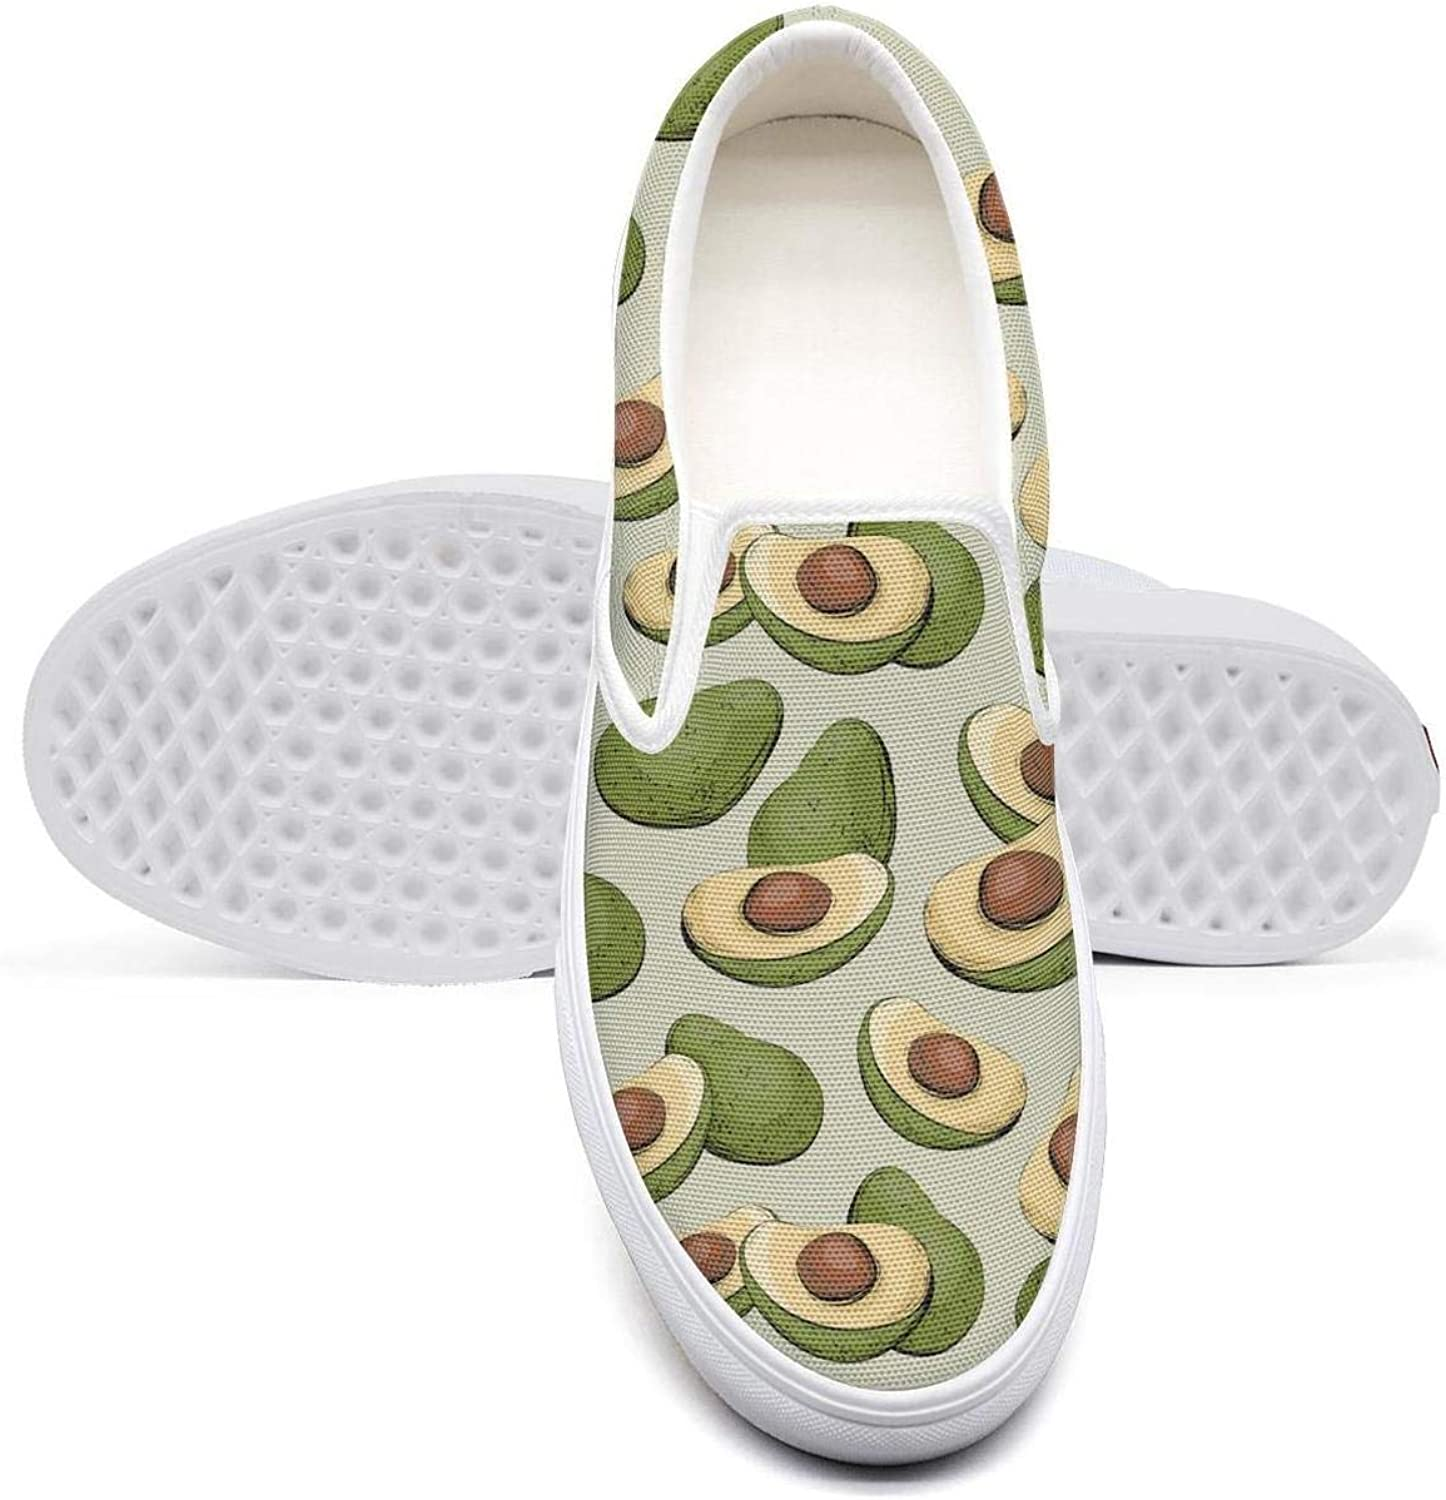 RivasPsm Womens Slip-on Loafer Mature Avocado Squishy Casual Sneaker Flat Walking Shoes Comfort